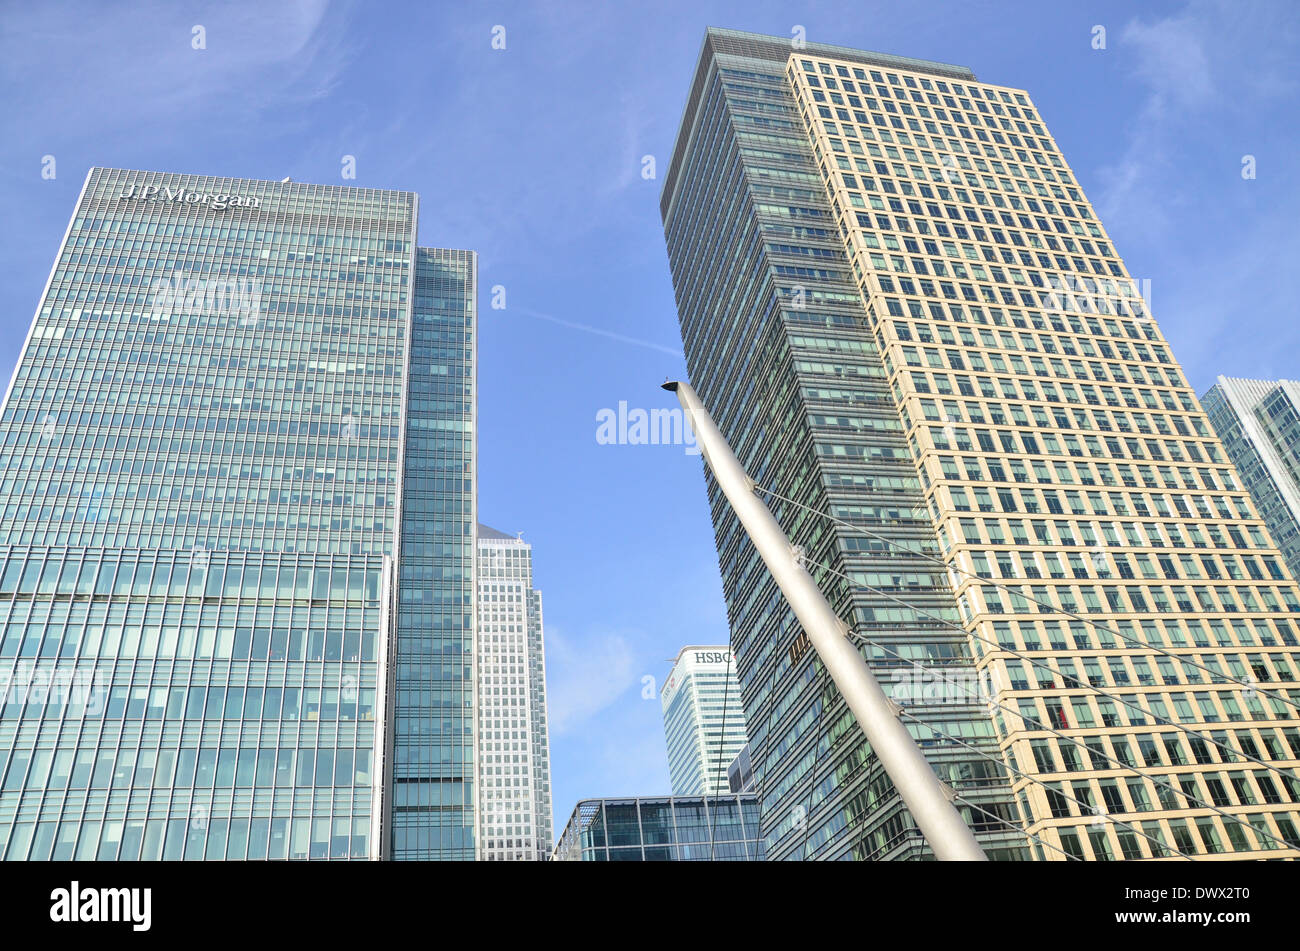 Office Blocks in Canary Wharf, Docklands, East London, England, UK - Stock Image